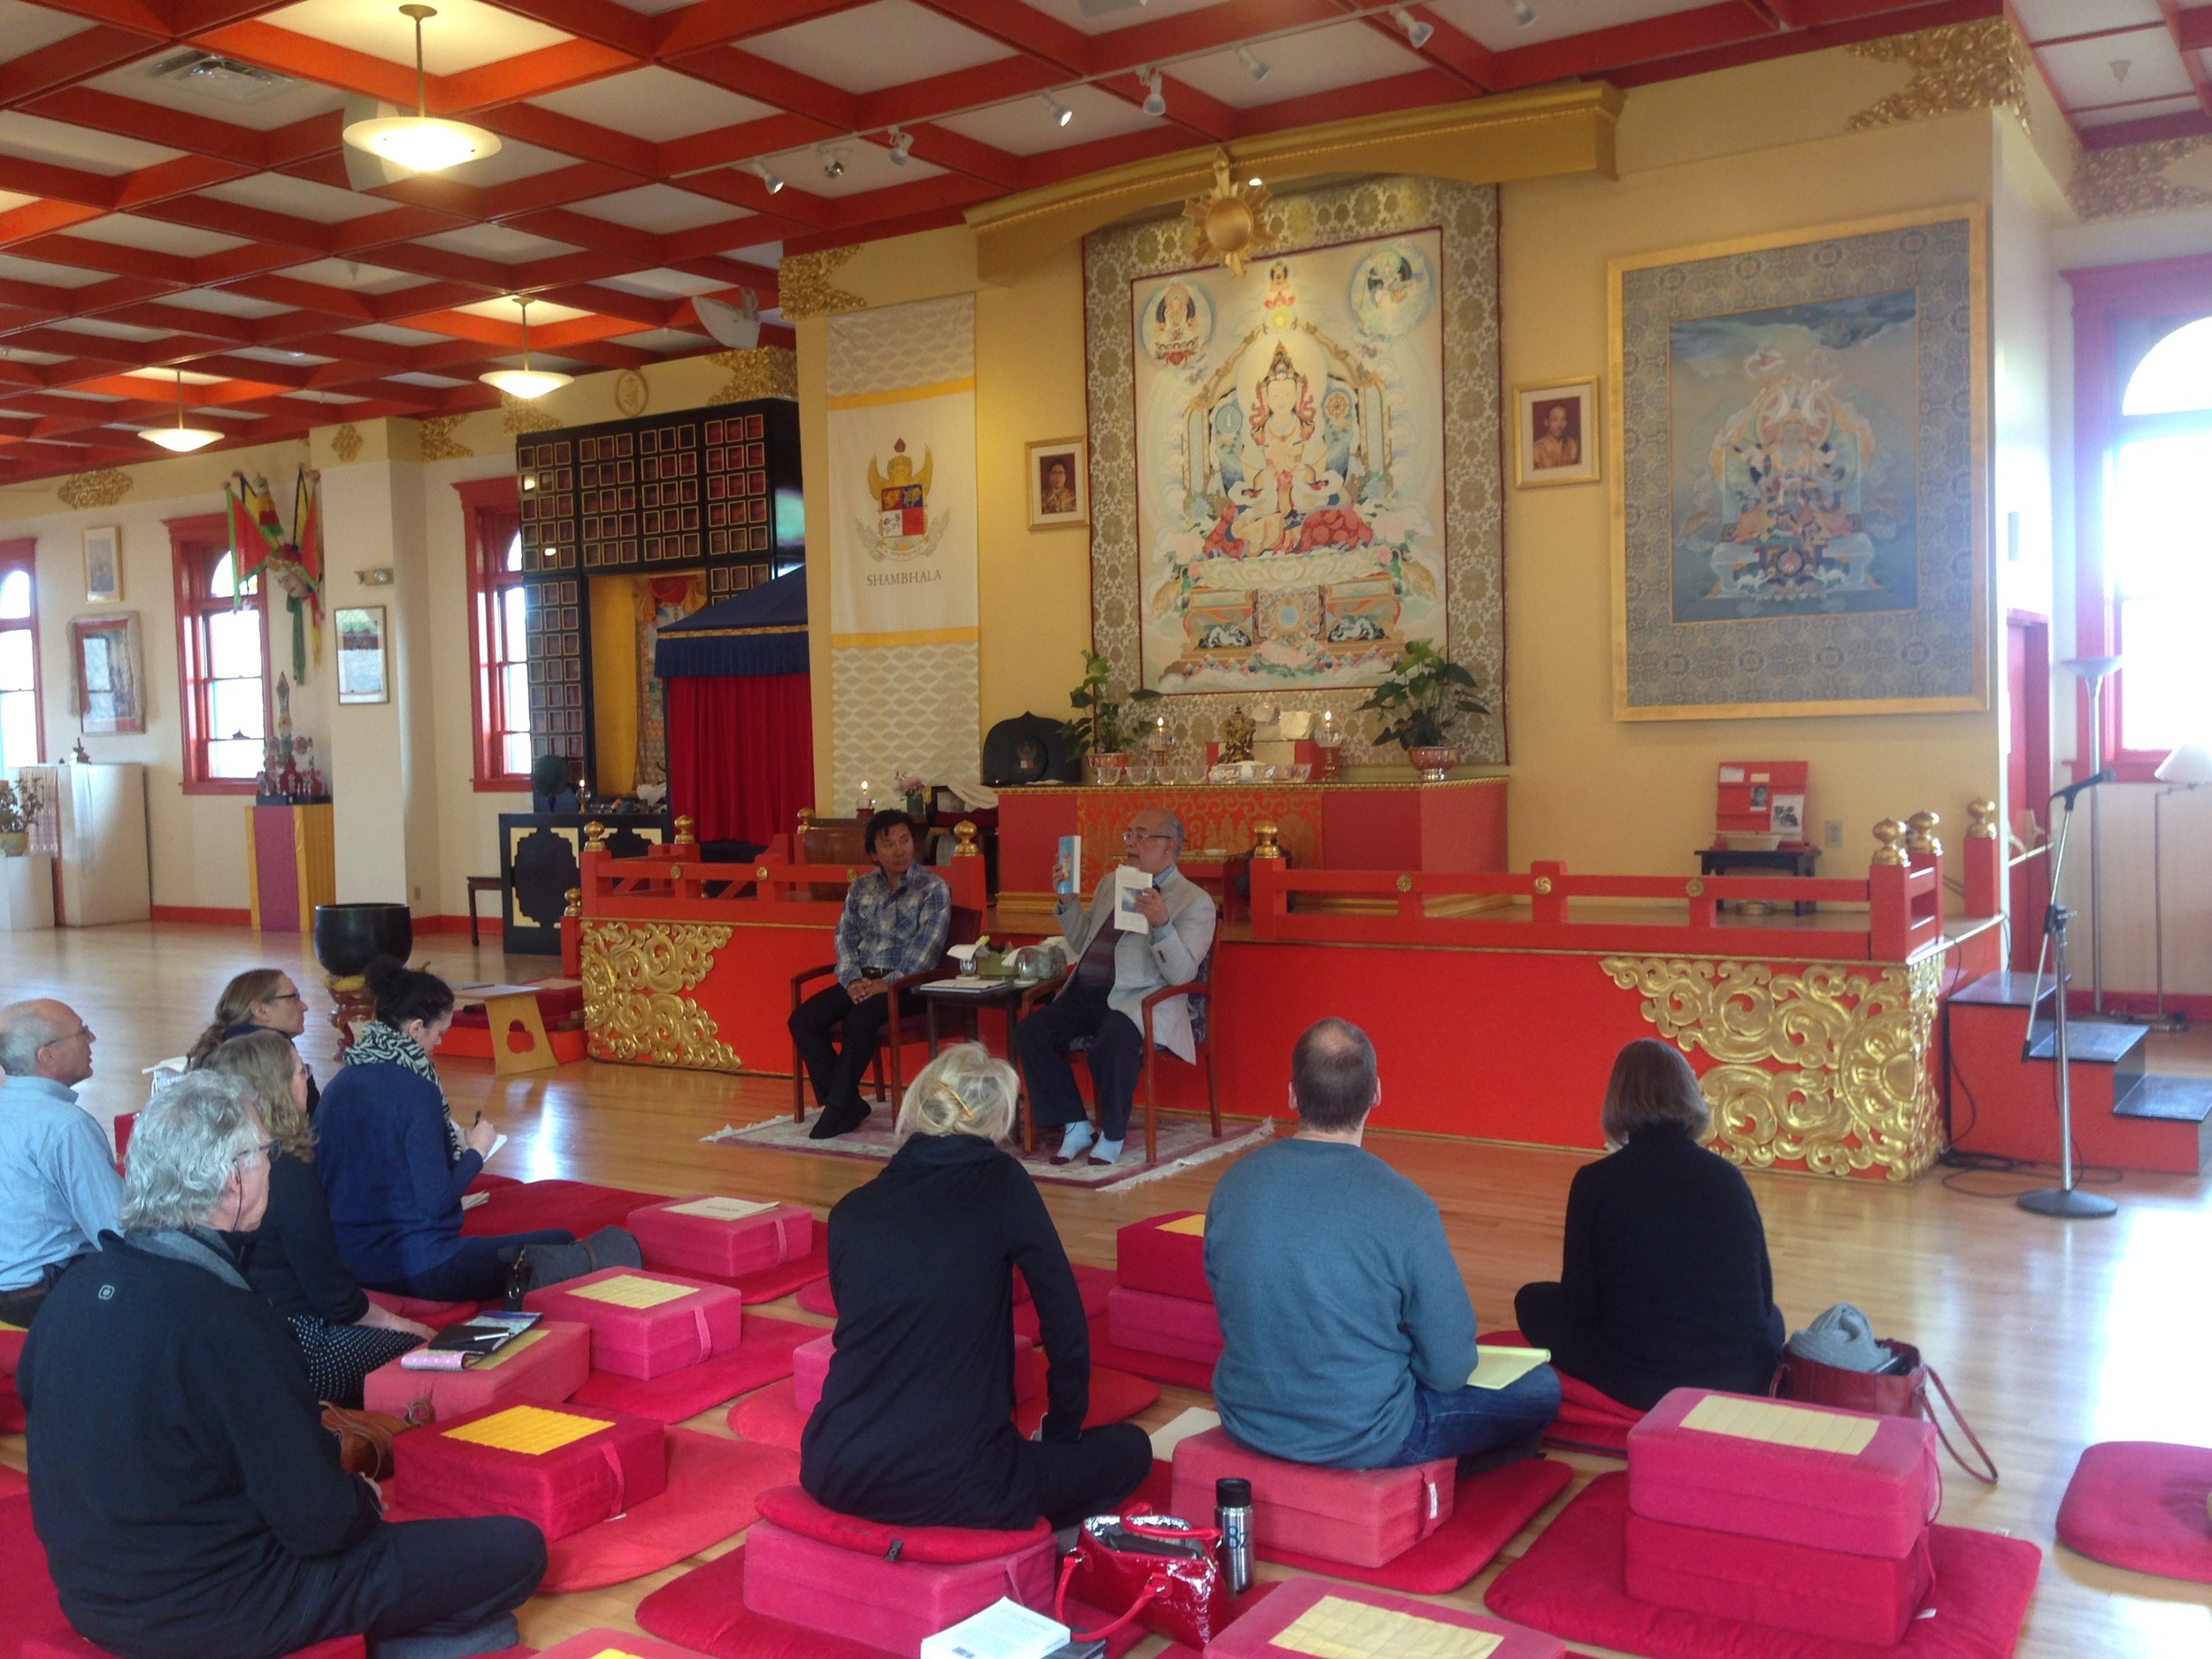 Pema Namdol and Samuel Bercholz teaching a bardo workshop, Boulder Shambhala Center (2017)